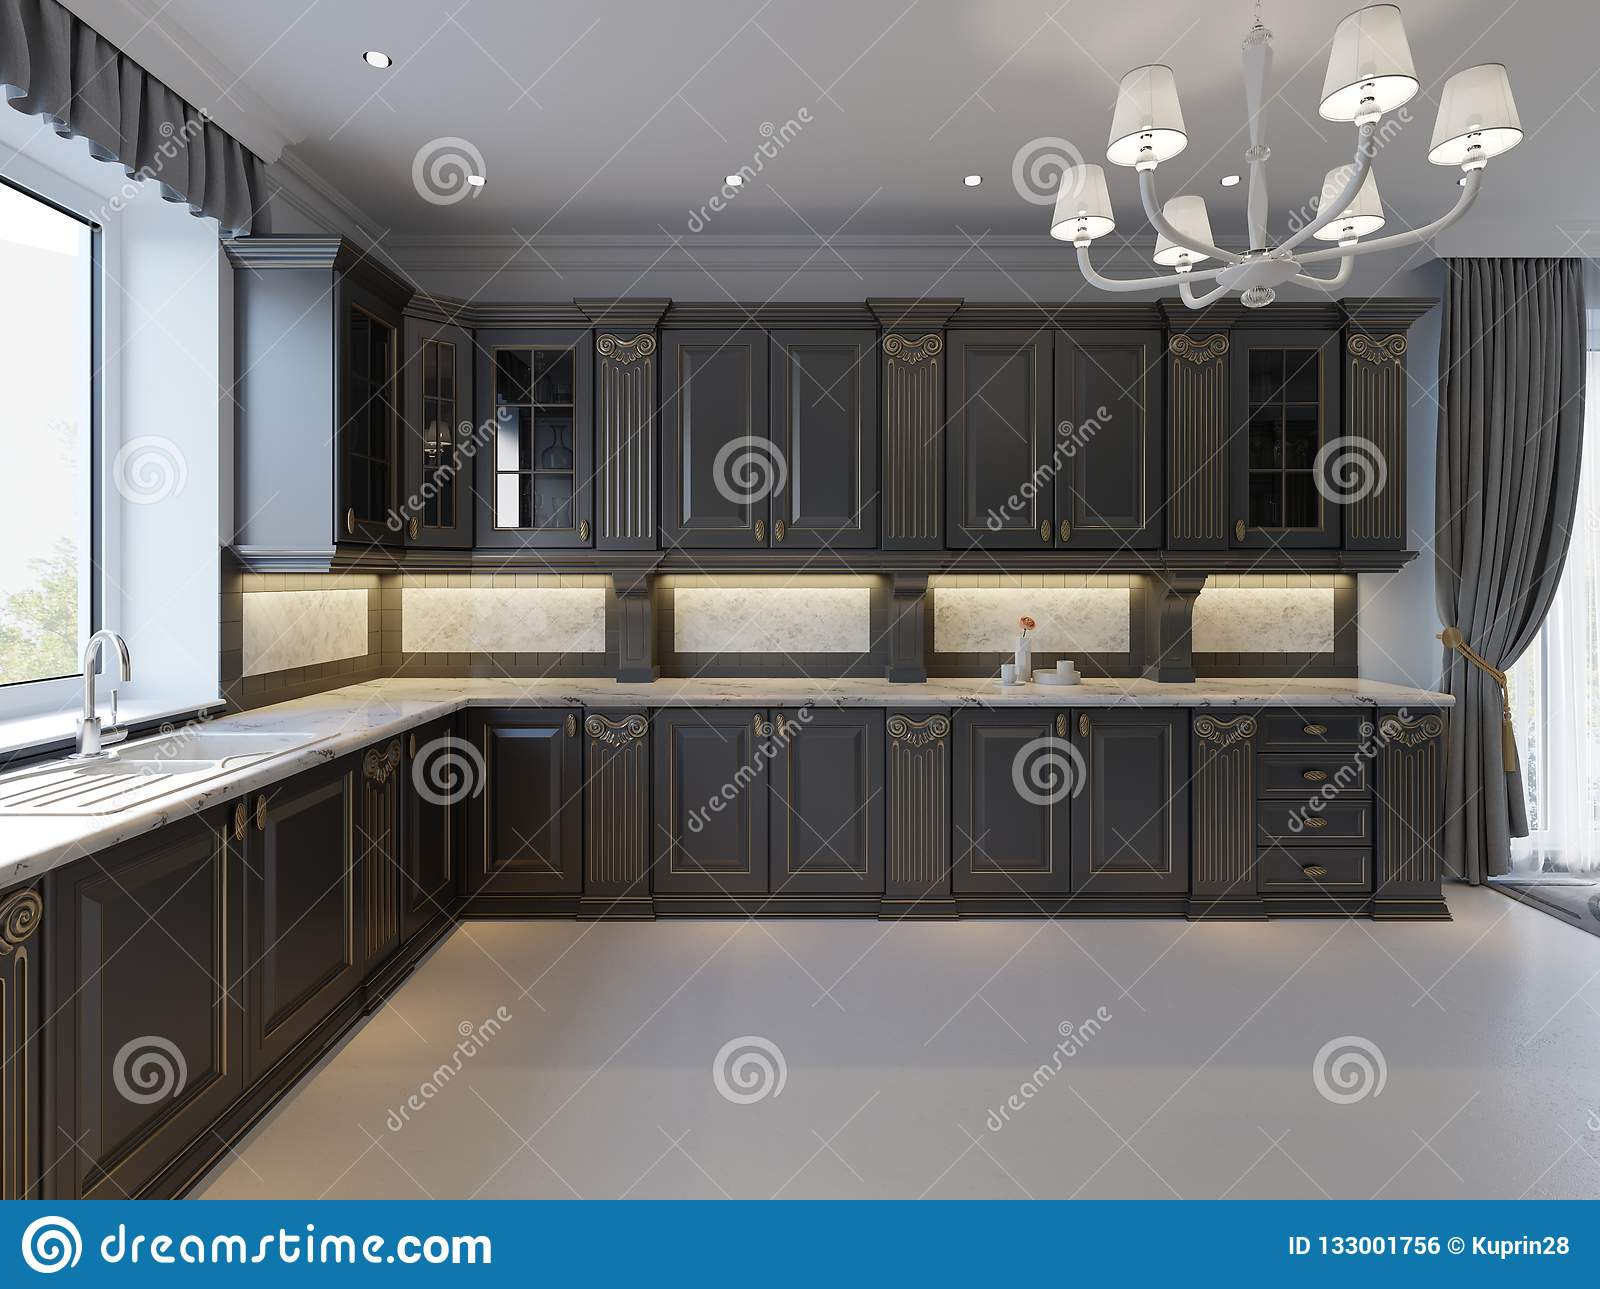 Modern English Classic Style Kitchen Interior Design With